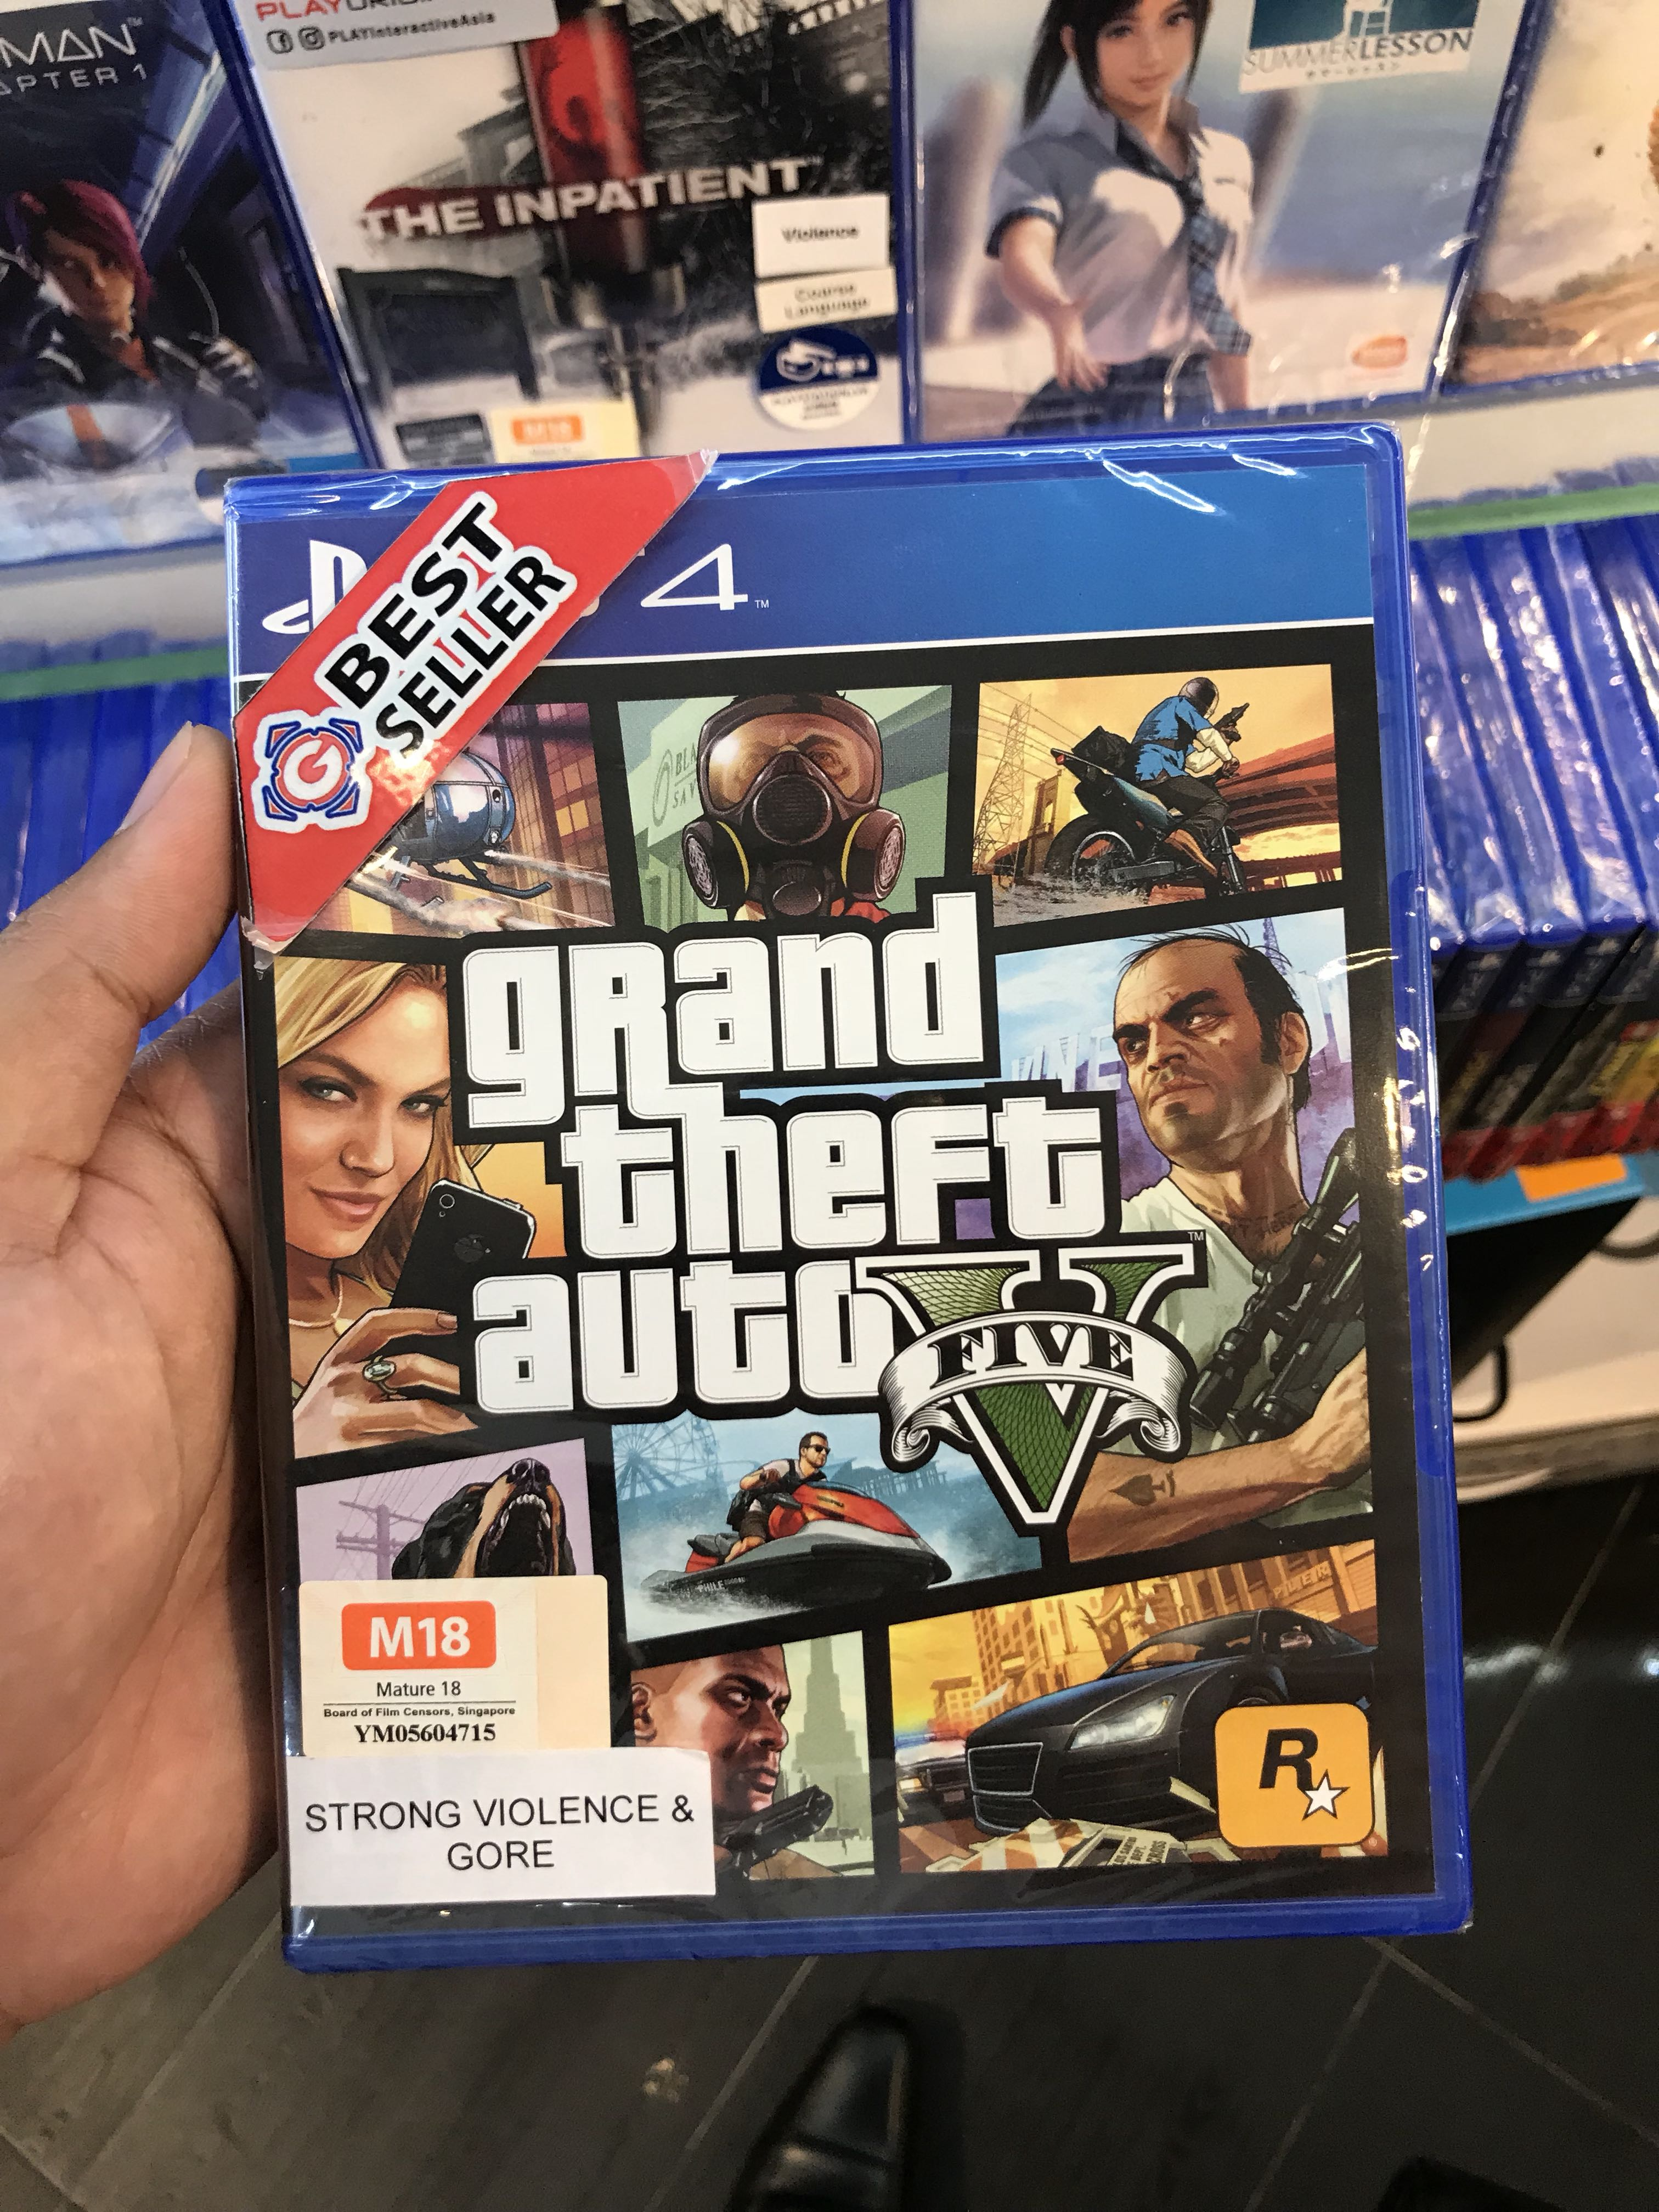 Brand new GTA 5 for PS4!